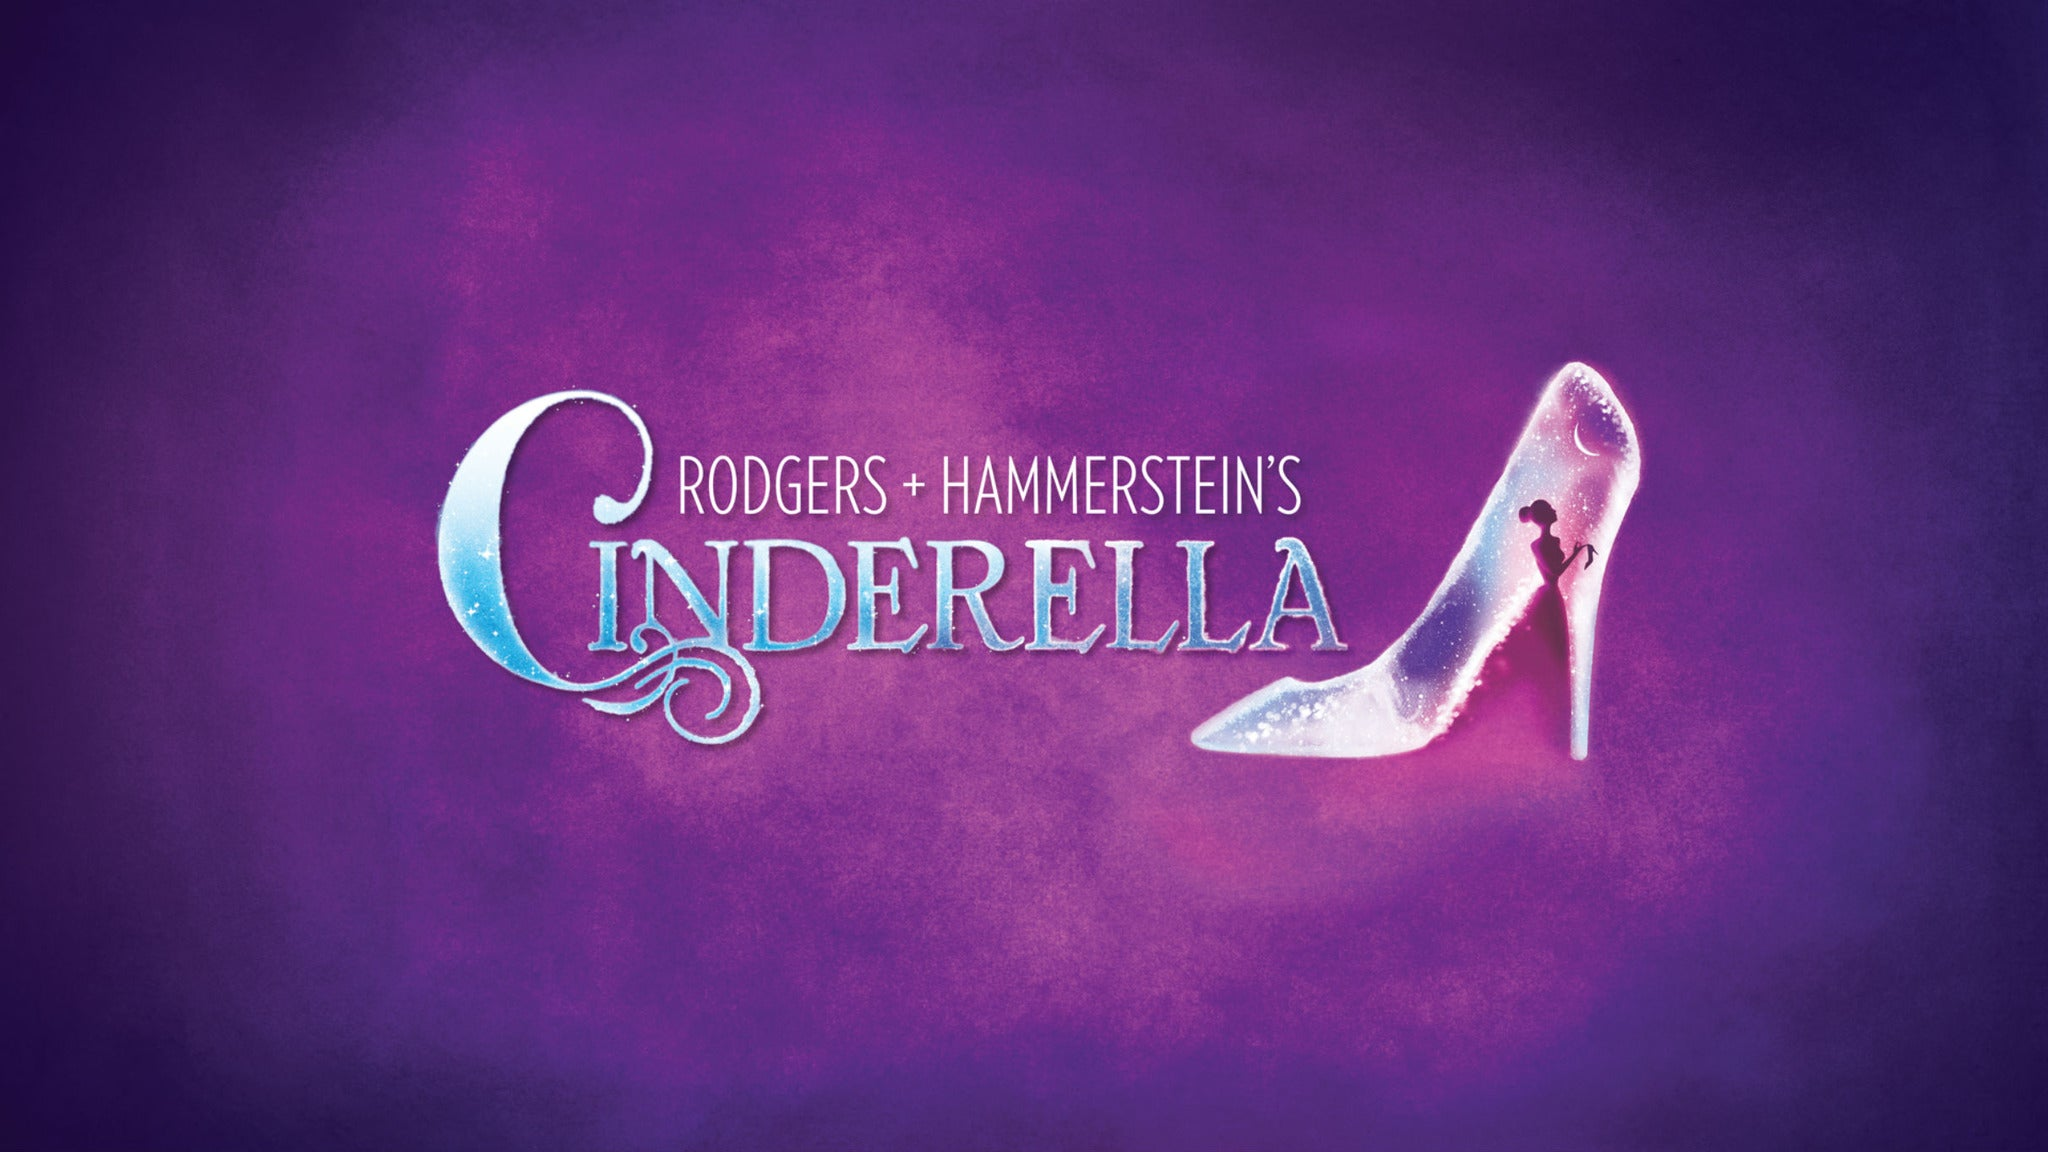 Cinderella-Theater at Classic Center Theatre